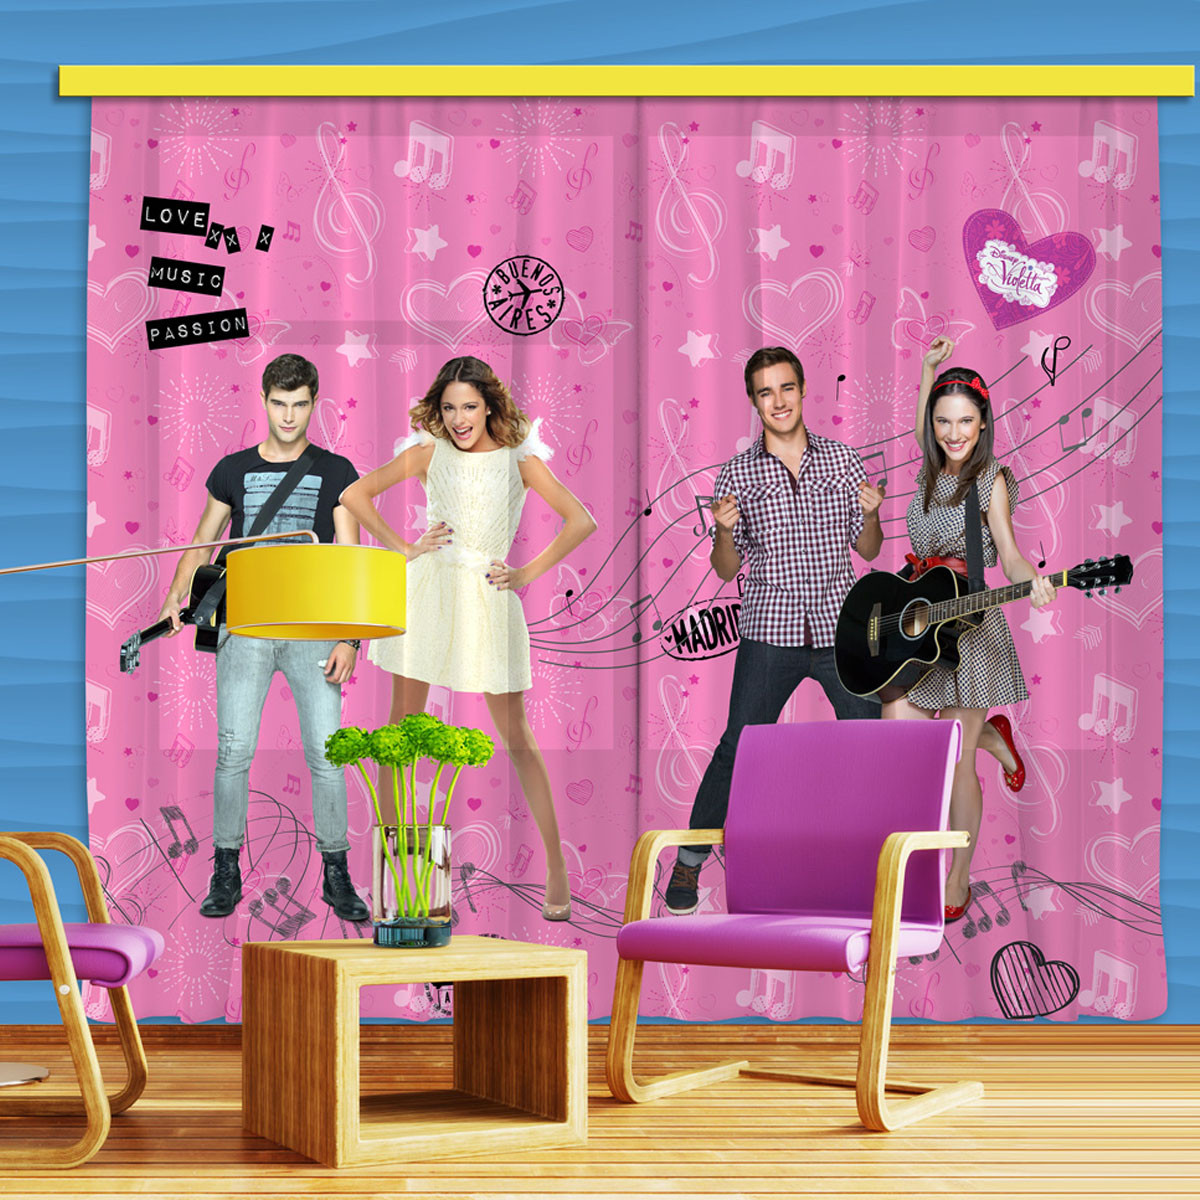 Rideaux Rose Violetta Disney Channel-Occultant : 280x245 cm